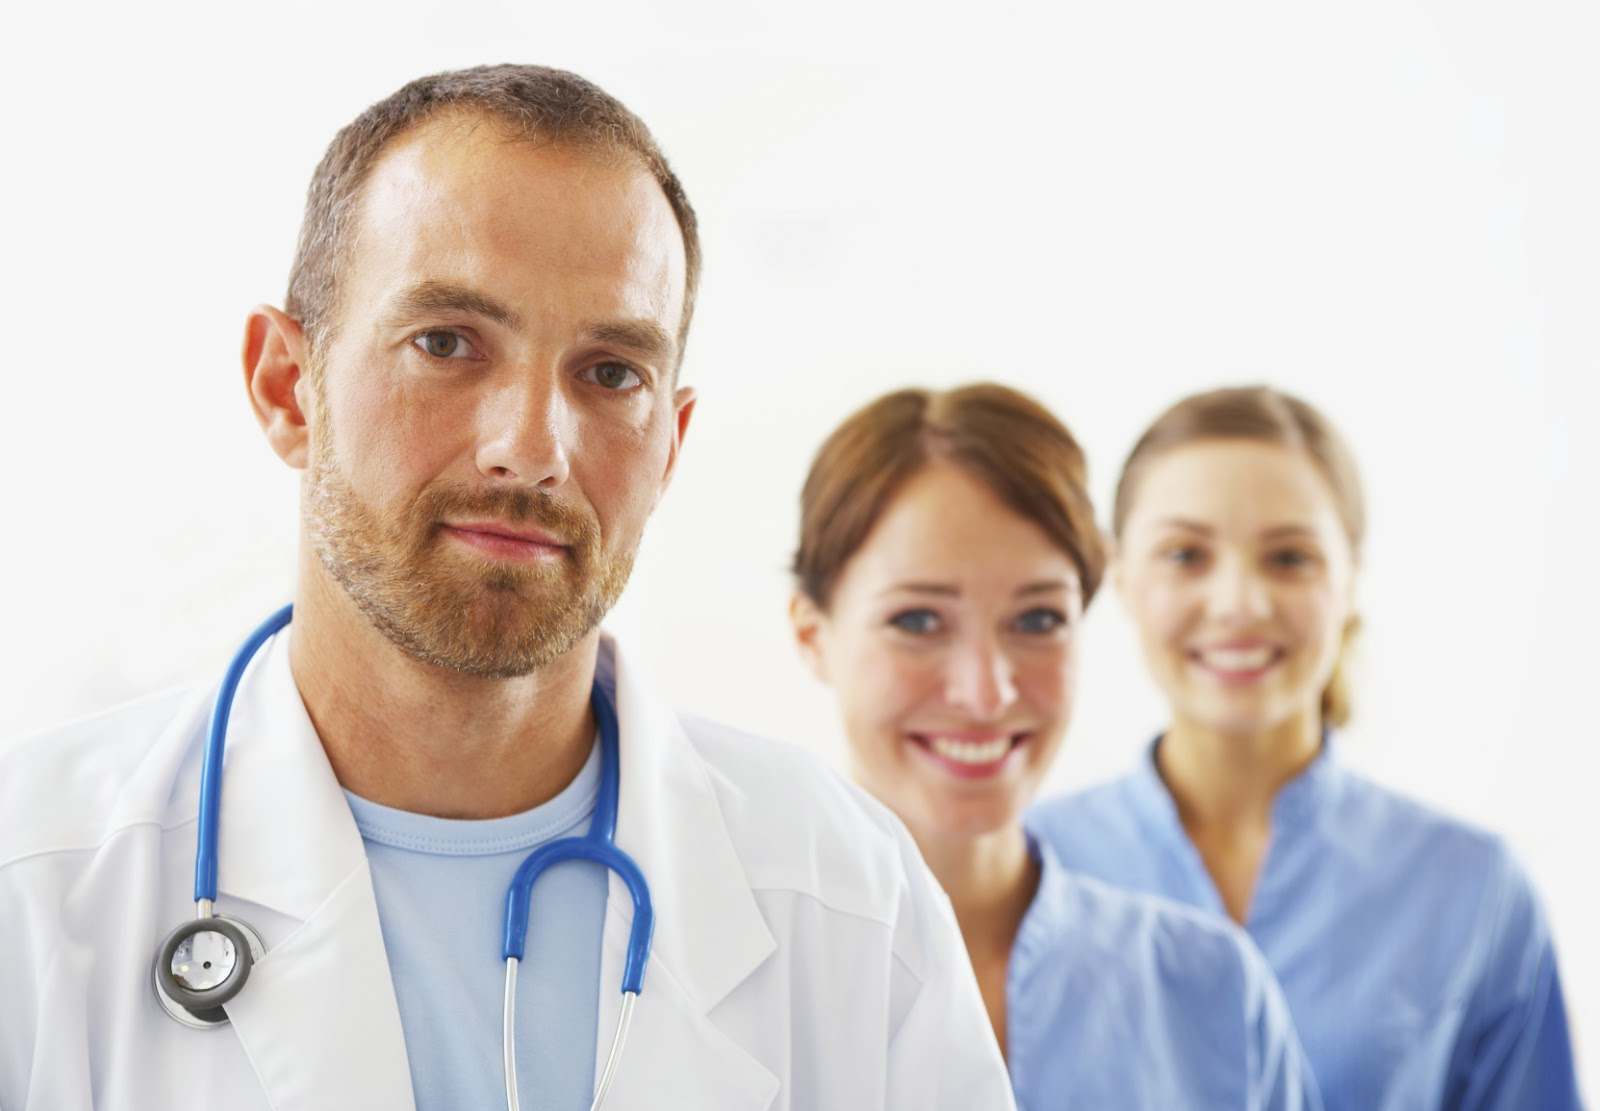 DIRECT MBBS ADMISSION 2014 IN TOP COLLEGES-MANAGEMENT QUOTA